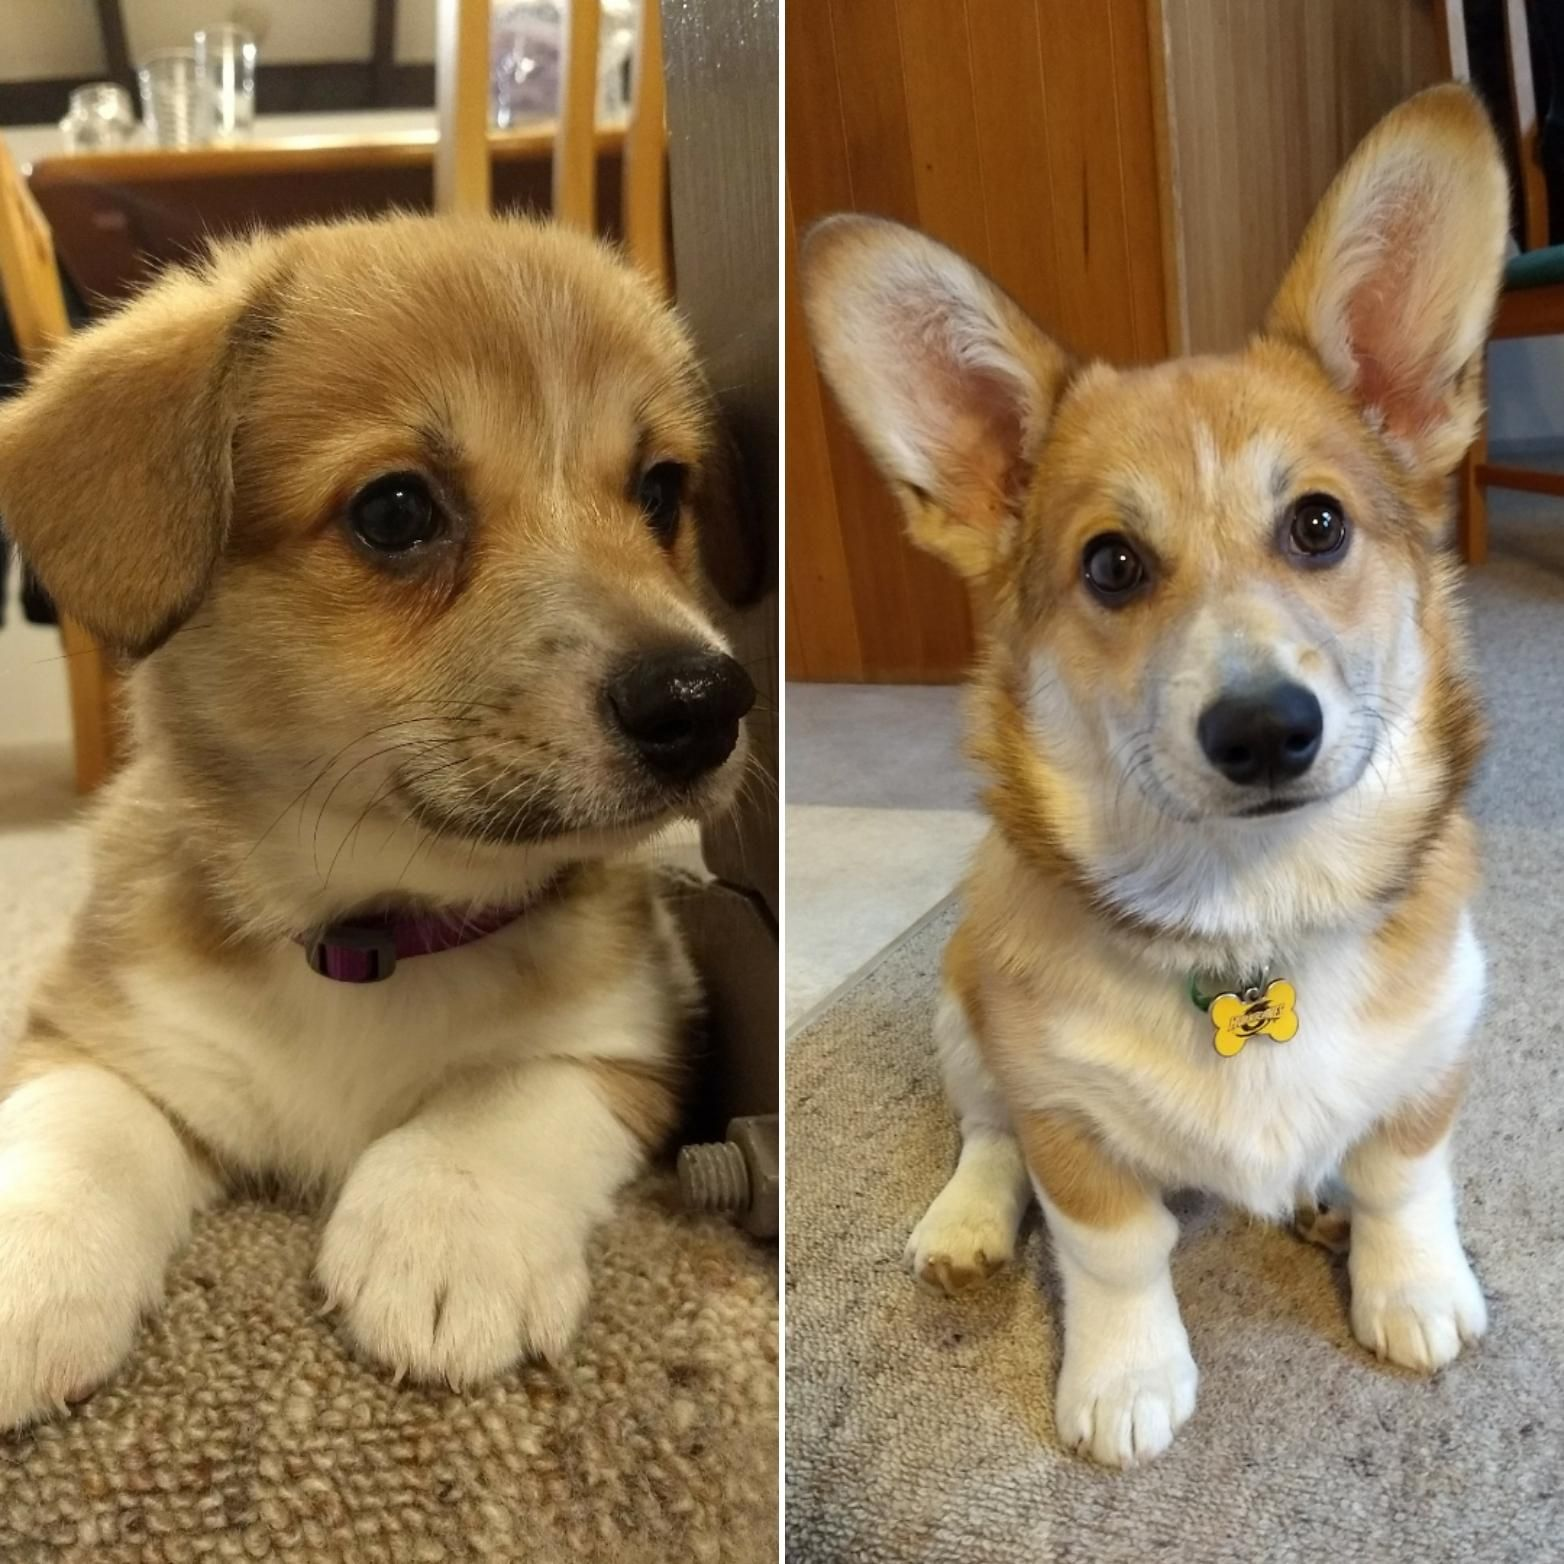 From Puppy To Dog 8 Weeks V 5 Months Corgi Dog Puppies